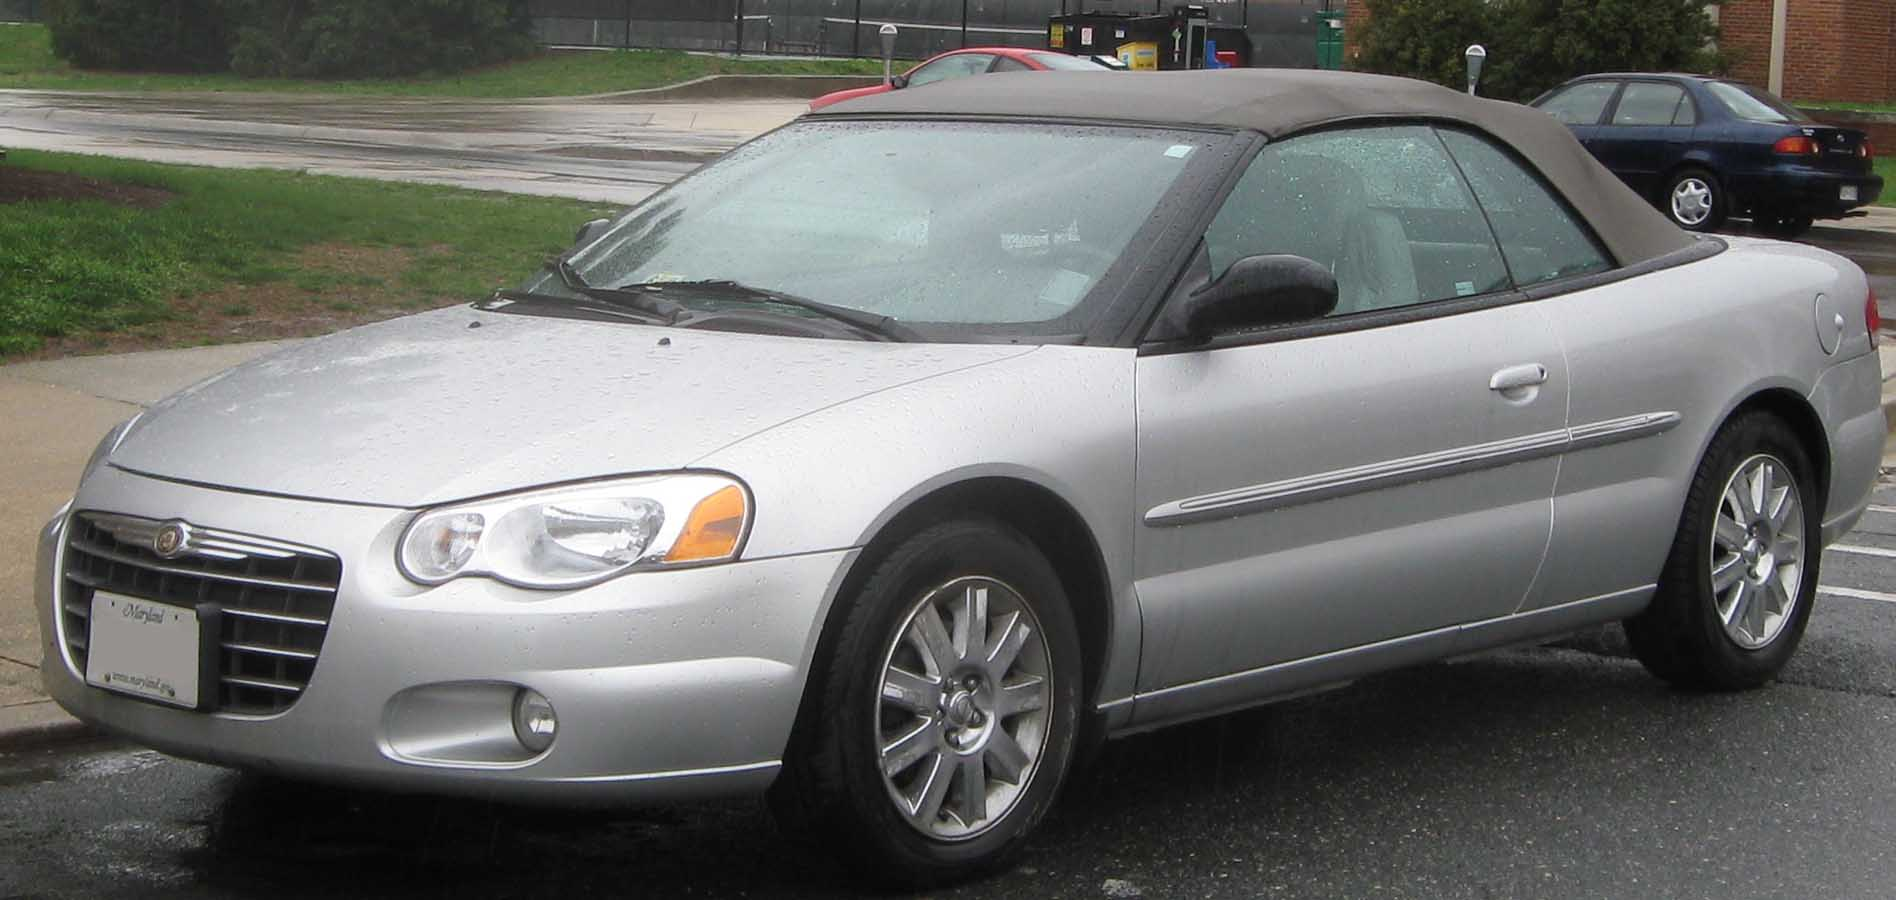 Convertible chrysler sebring 2005 #1